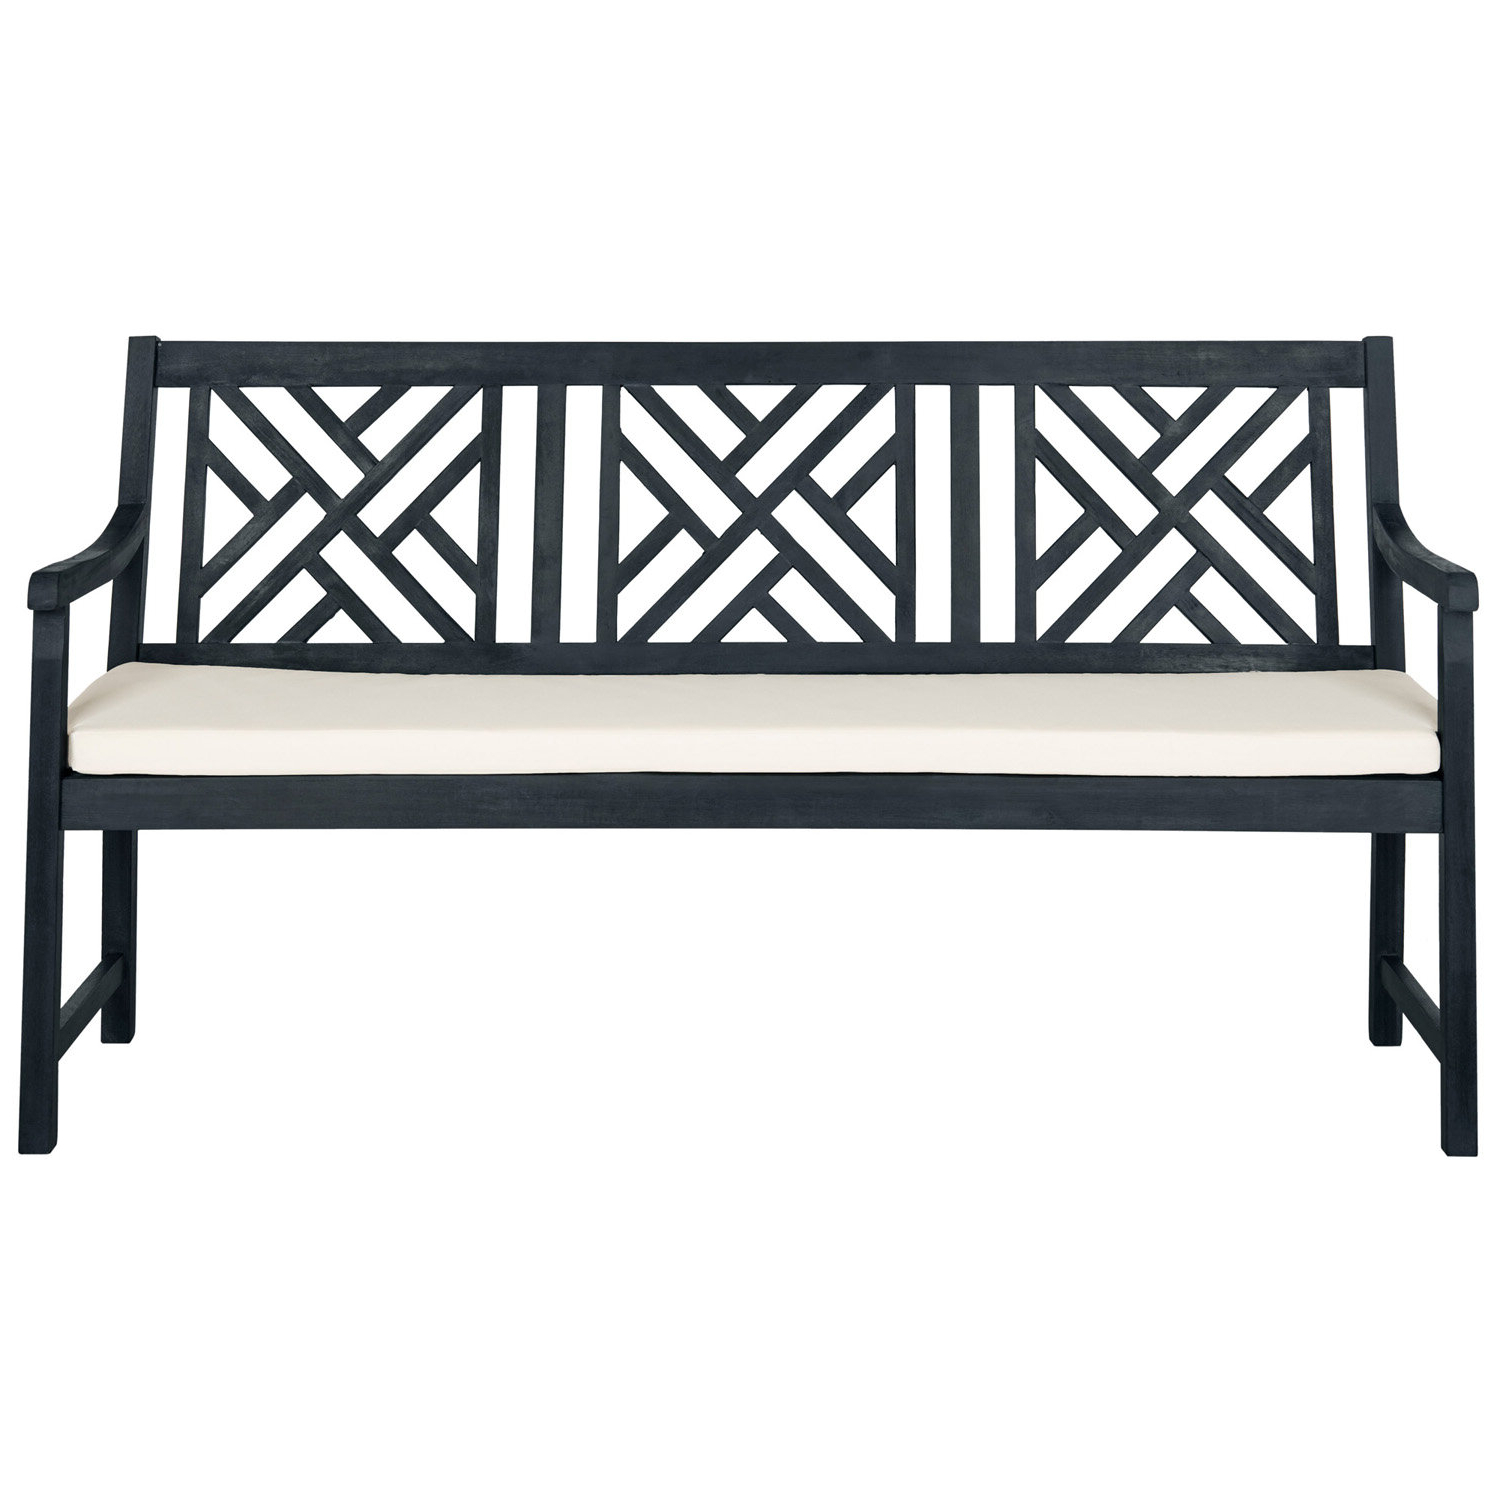 Gehlert Traditional Patio Iron Garden Benches Pertaining To Most Current Stanwich Acacia Garden Bench (View 17 of 30)